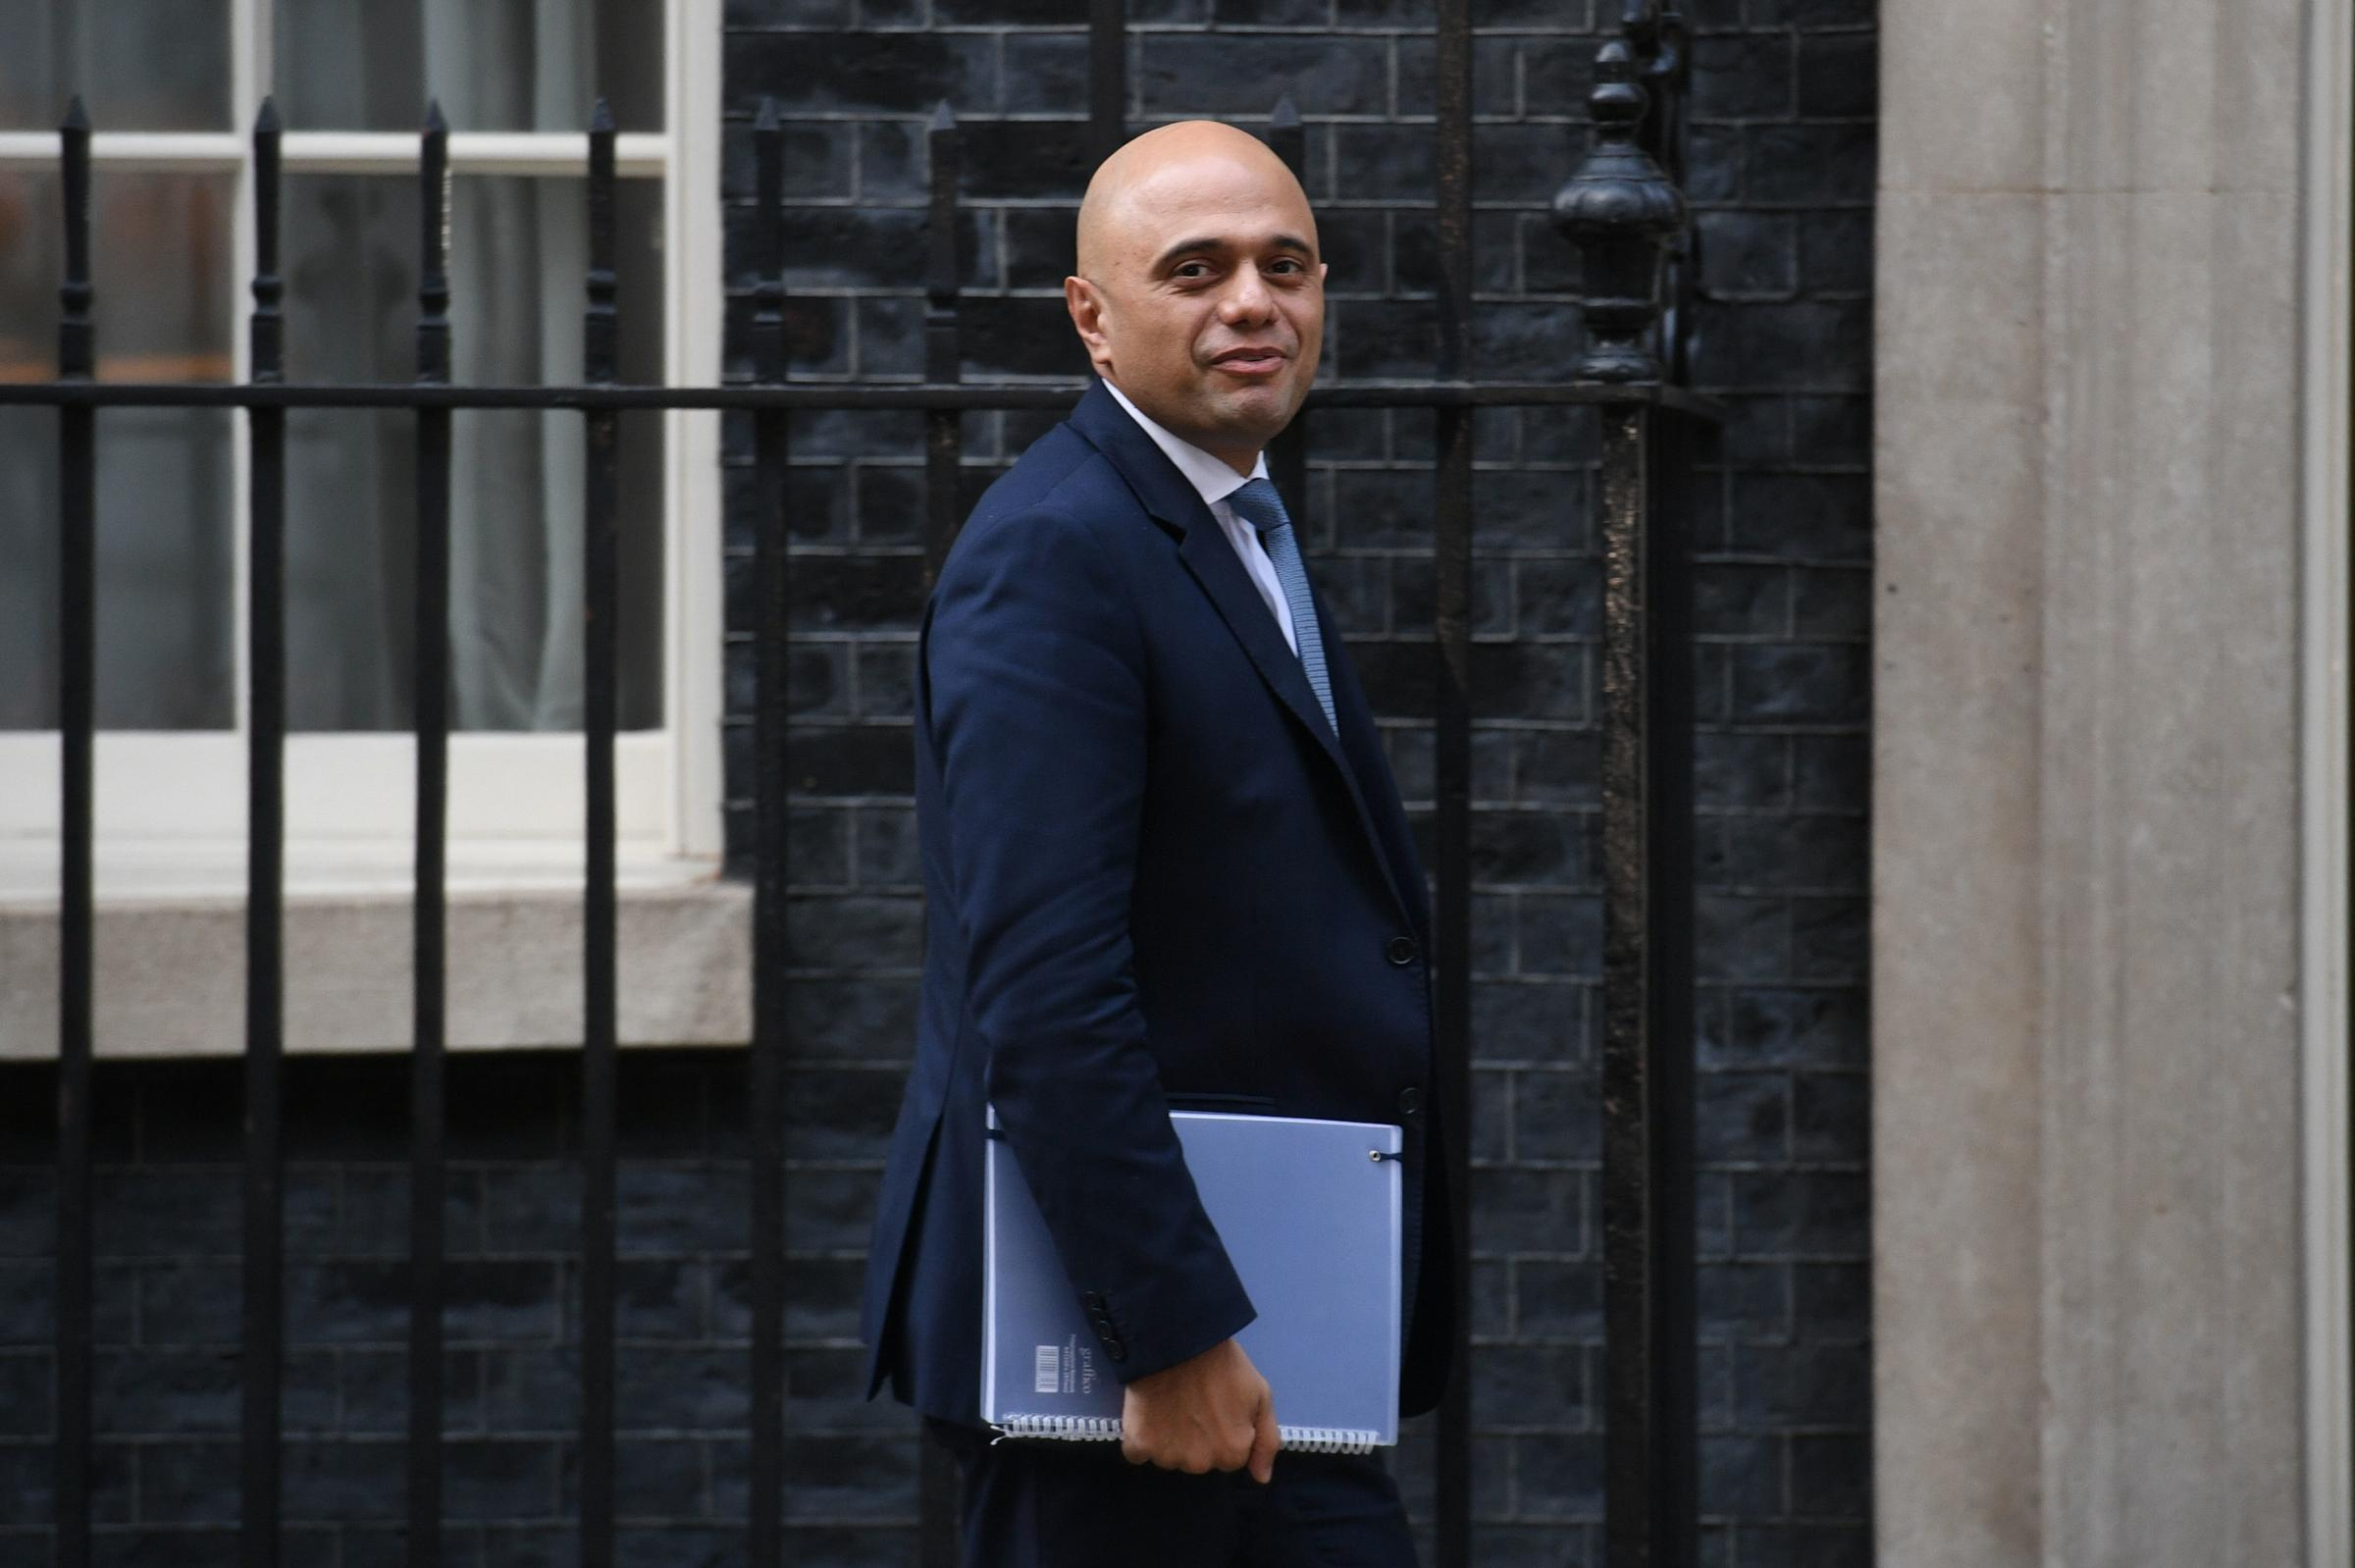 Home Secretary Sajid Javid arrives in Downing Street, London, for a Cabinet meeting. PRESS ASSOCIATION Photo. Picture date: Wednesday November 14, 2018. Prime Minister Theresa May is putting her Brexit plans to the Cabinet, 874 days after